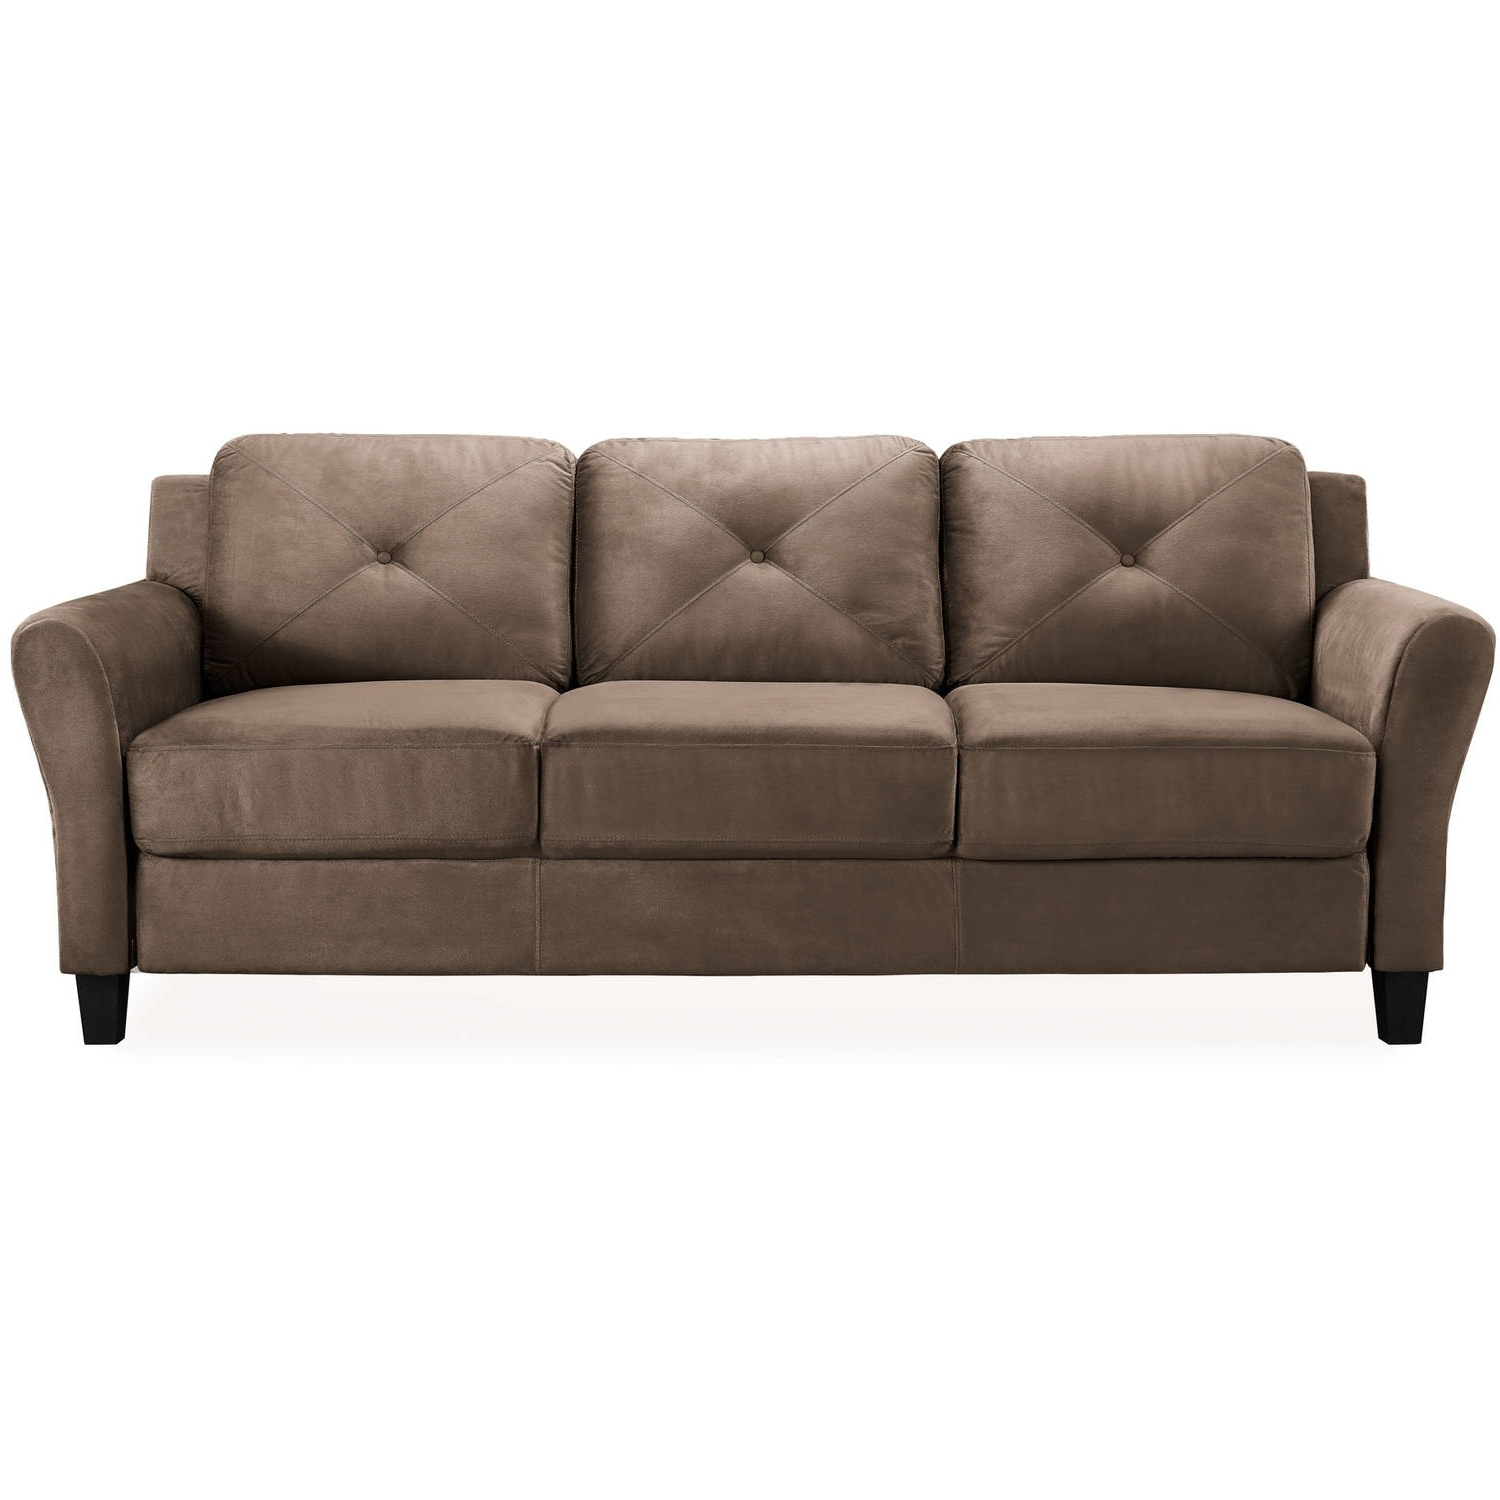 2017 Sectional Sofas Under 200 Regarding Sofas & Couches – Walmart (View 1 of 15)